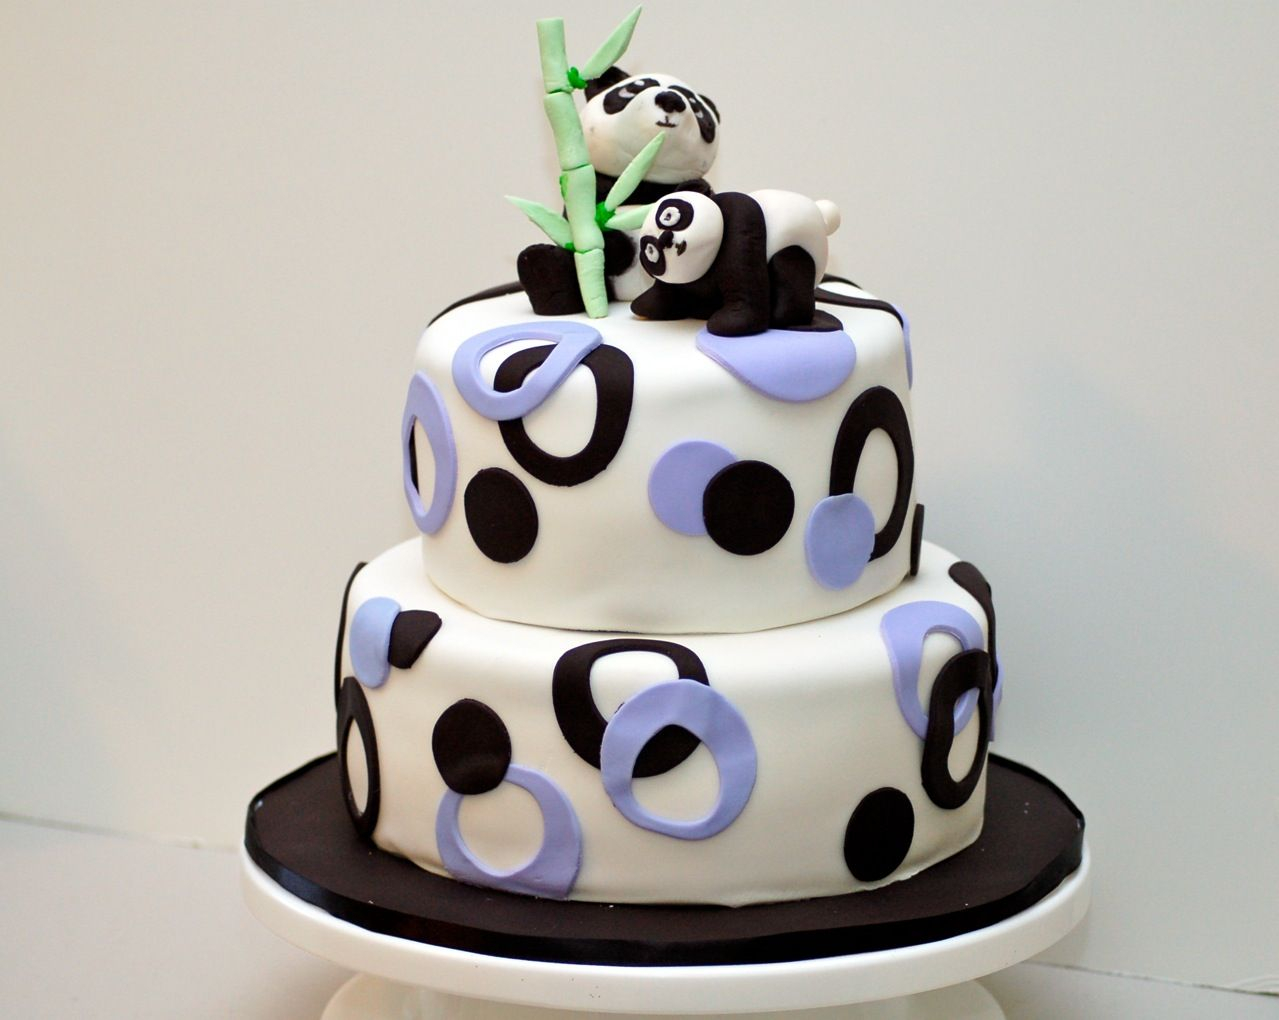 Panda Birthday Cake Panda Cakes Best Google Search Birthday Cake Ideas Panda Cakes